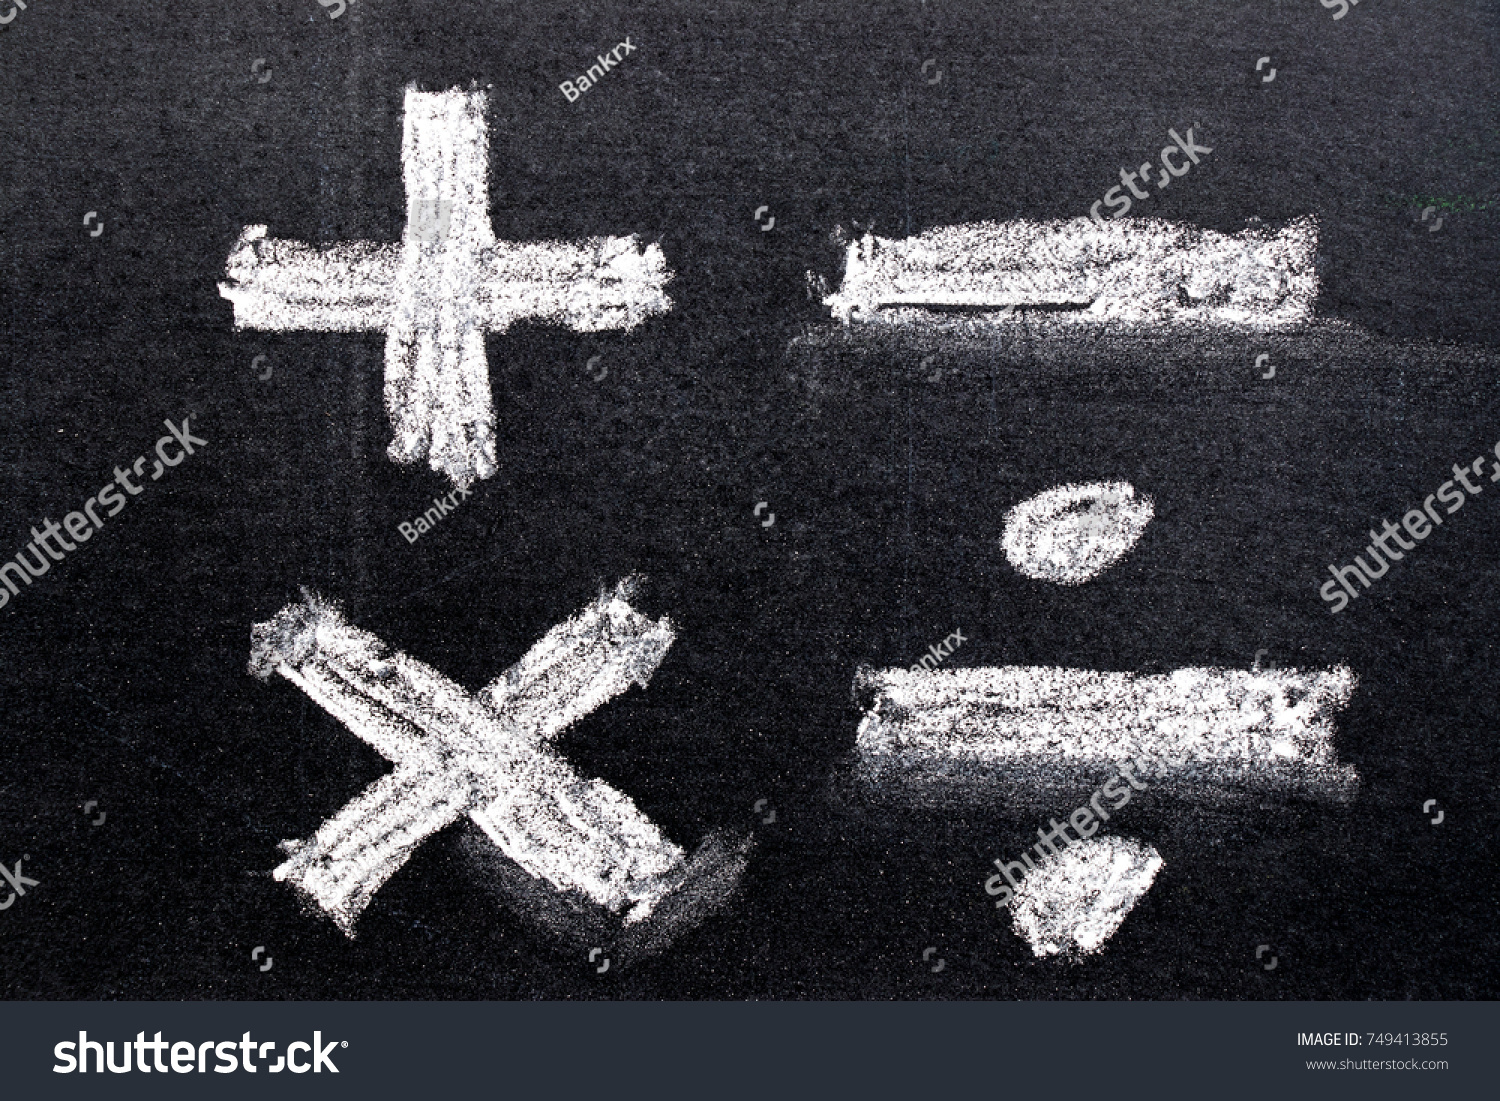 Plus text symbol gallery symbol and sign ideas plus or minus symbol word choice image symbol and sign ideas hand drawing white chalk mathematics biocorpaavc